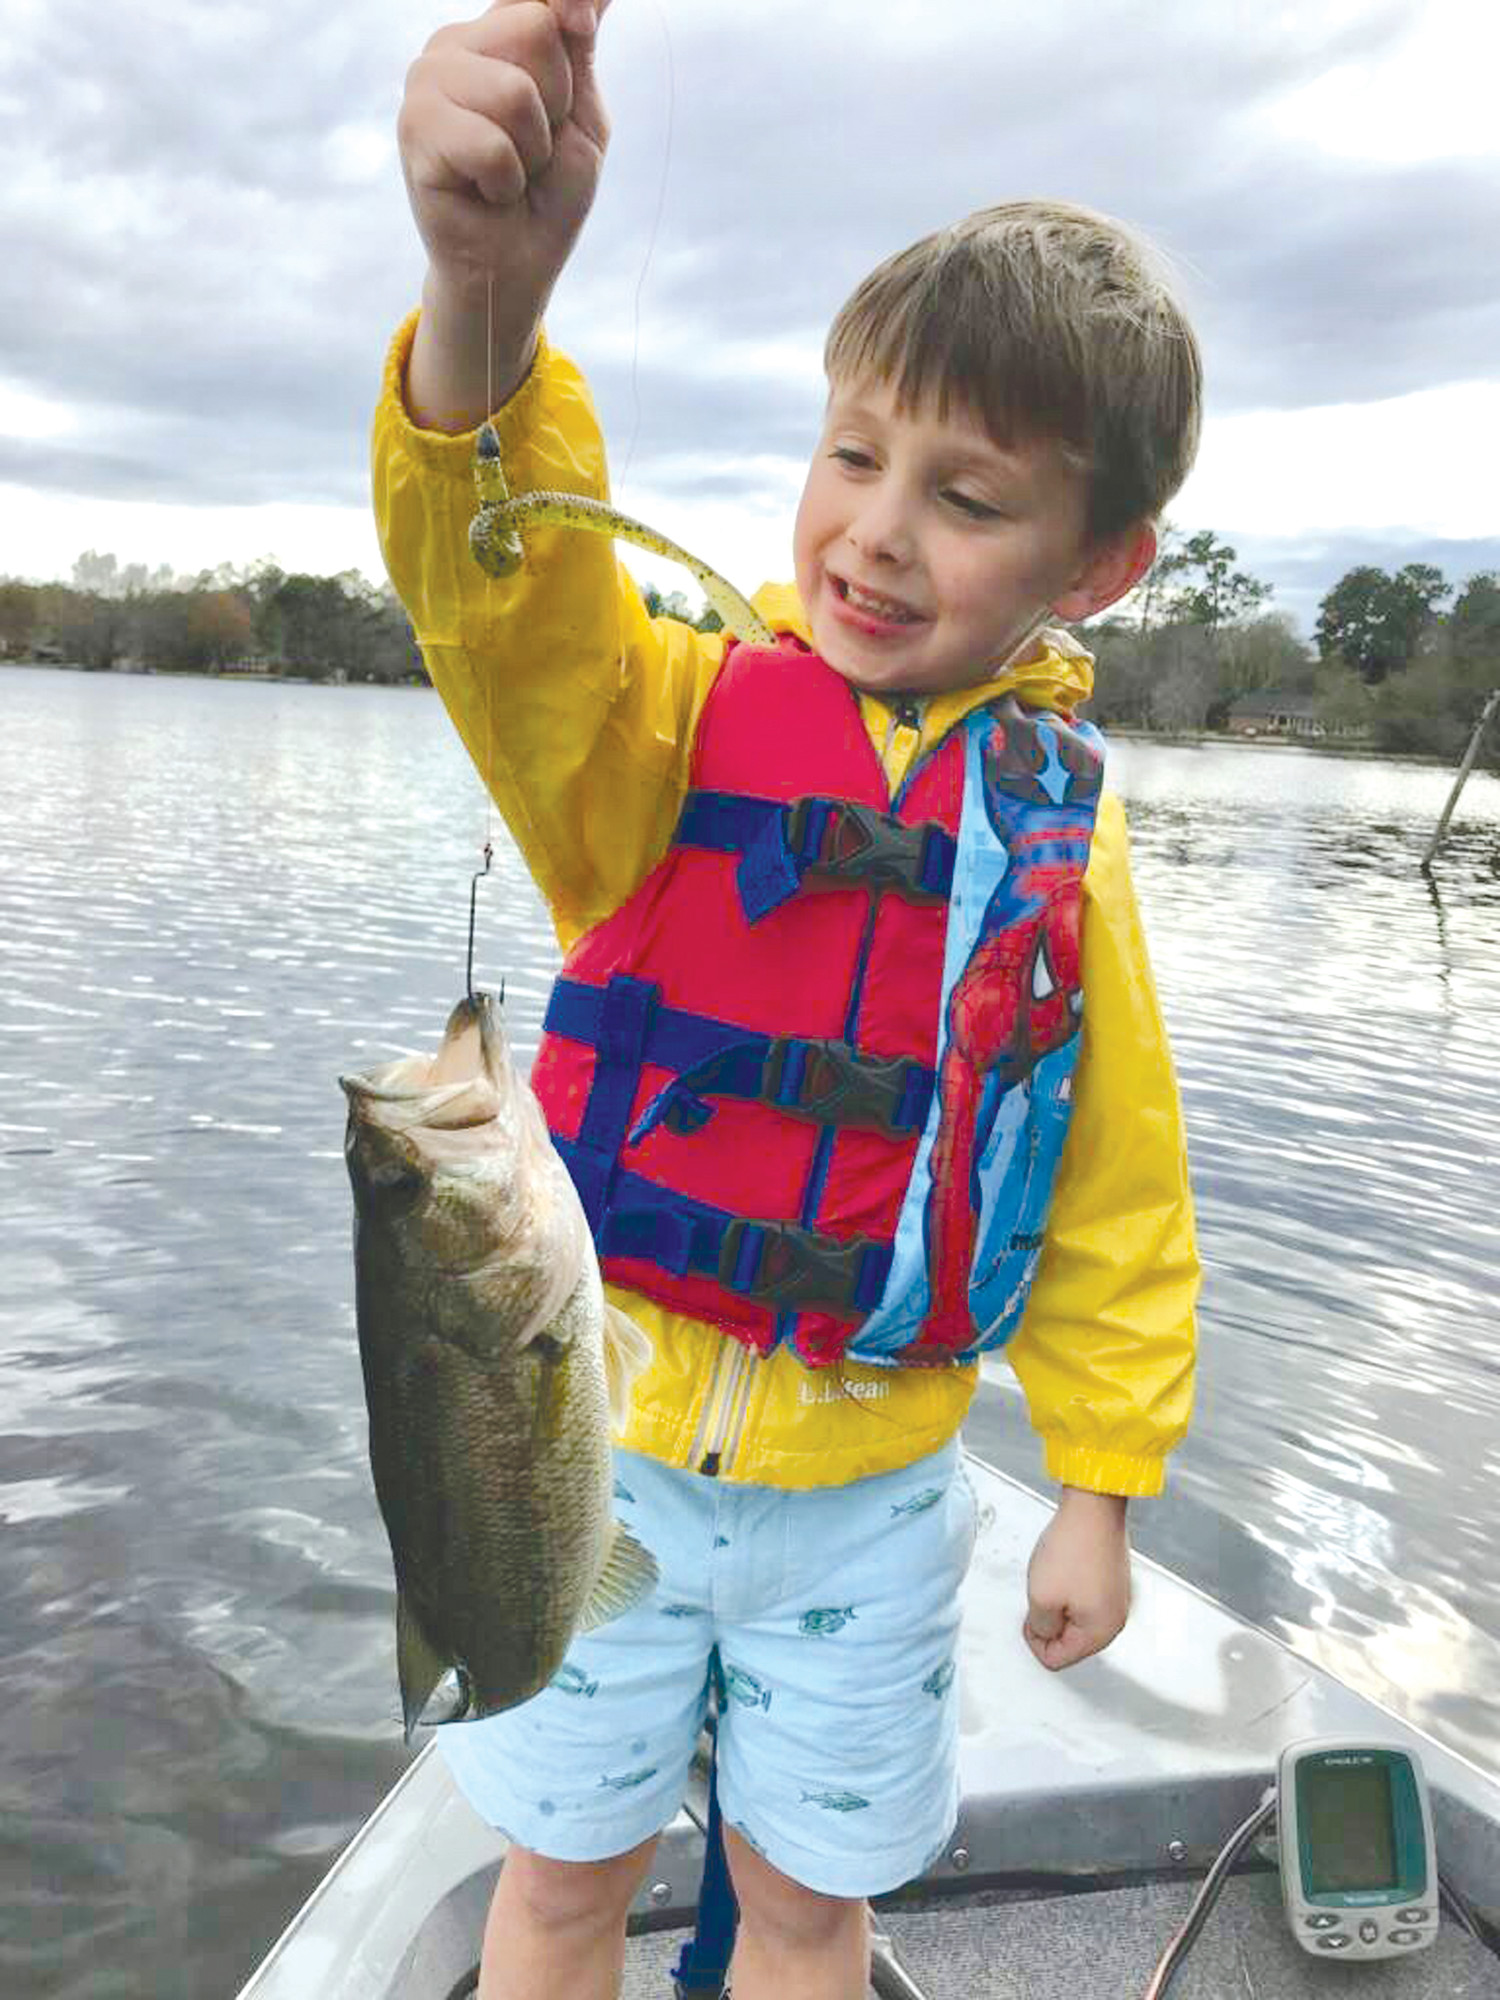 Joshua Andrews, 5, caught his first bass entirely on his own (cast, set hook and reel in) at Lakewood Pond.